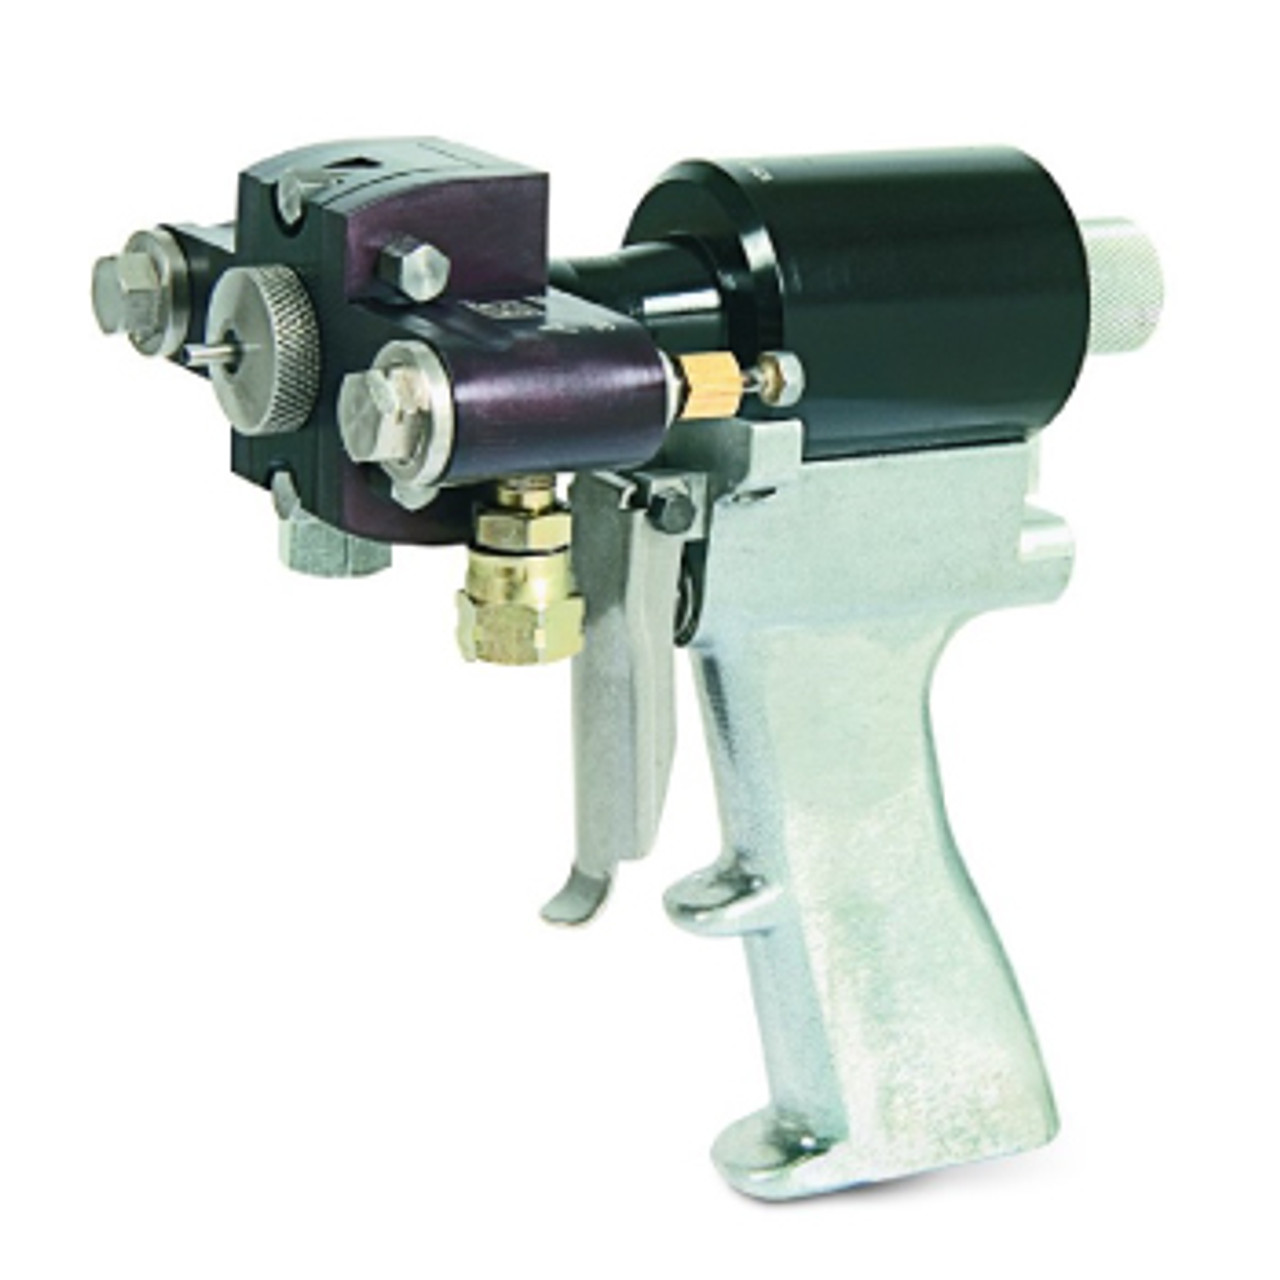 Graco Gap Pro Spray Gun